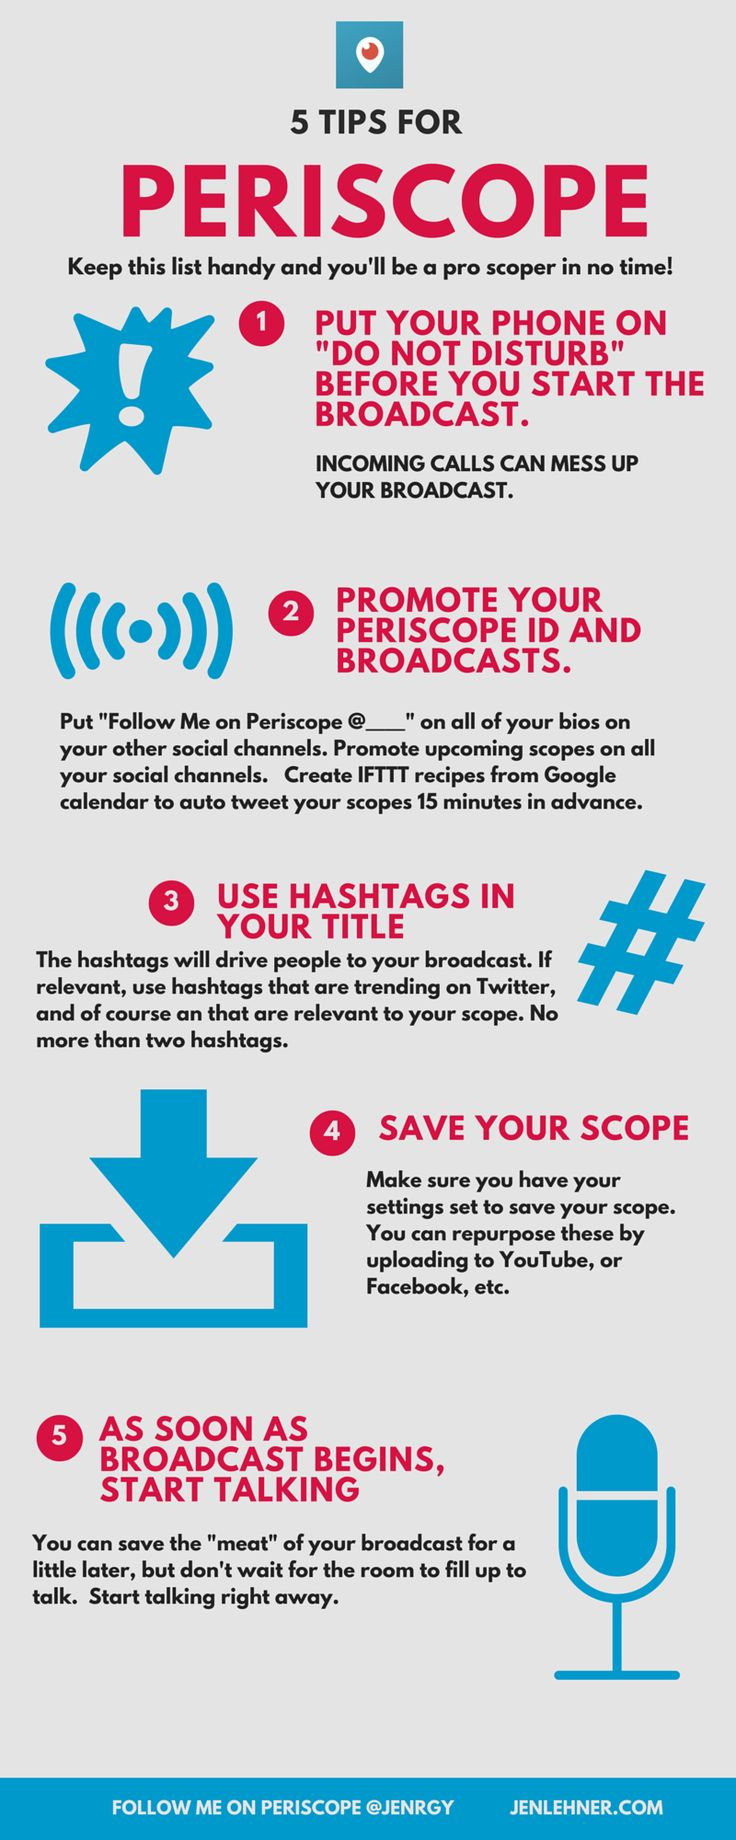 "Periscope is a game changer on so many levels.  If you aren't familiar with this new live streaming app, go to my videos on my Facebook page at facebook.com/thejenlehner and watch ""How to Use Meerkat and Periscope to Market Your business"".  Here are  5 tips for using Periscope. I hope you find it helpful.  Please feel free to join my Periscope group if you are interested in learning more. Facebook.com/groups/weheartperiscope  And make sure to follow me on Periscope @jenrgy"